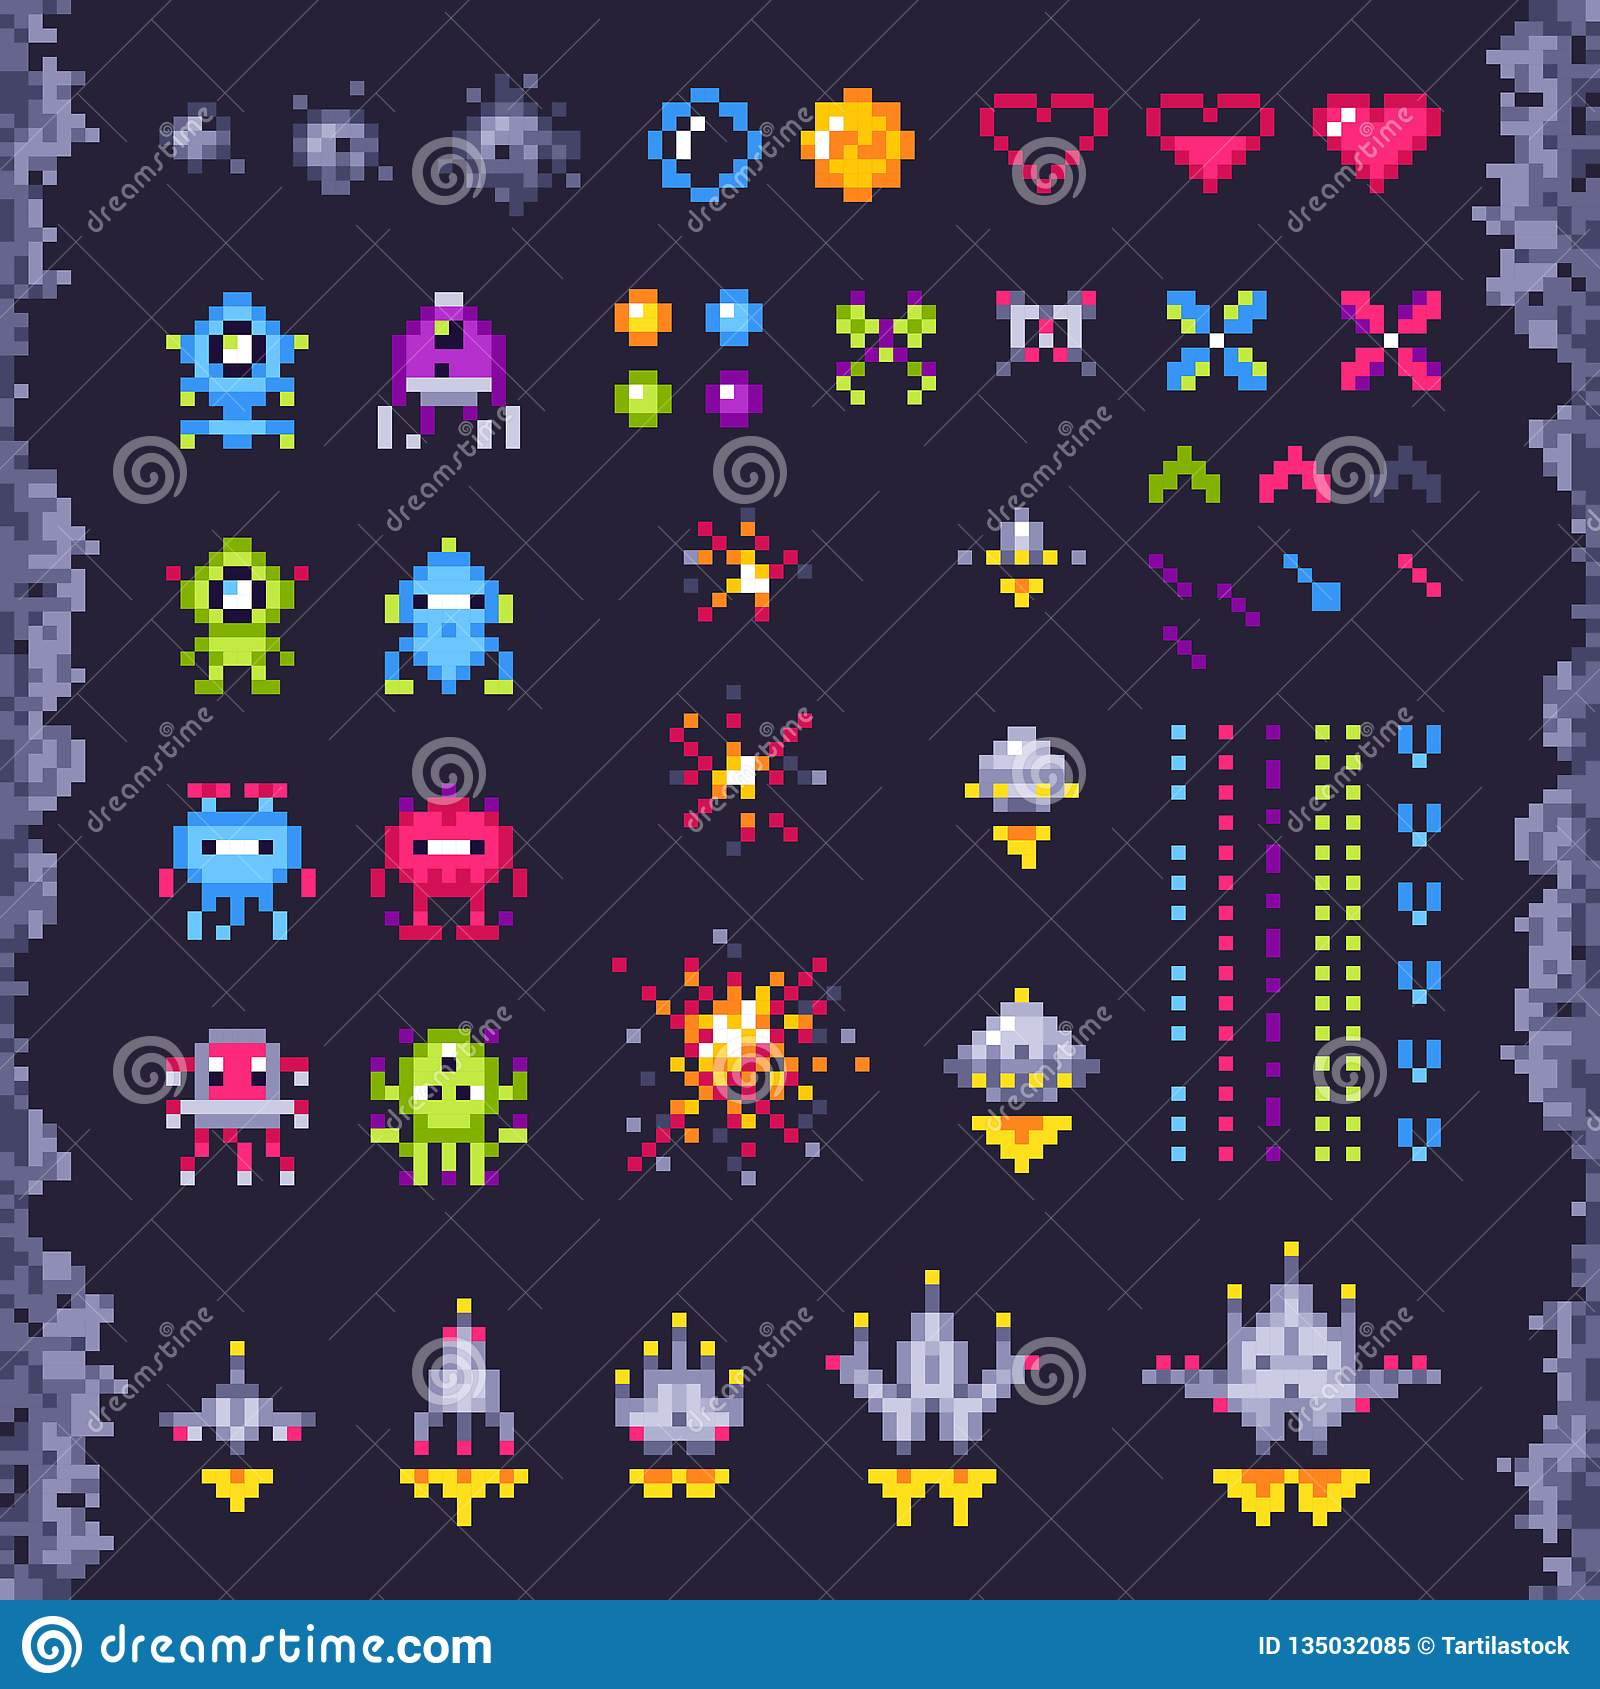 Retro space arcade game. Invaders spaceship, pixel invader monster and retro video games pixel art isolated objects